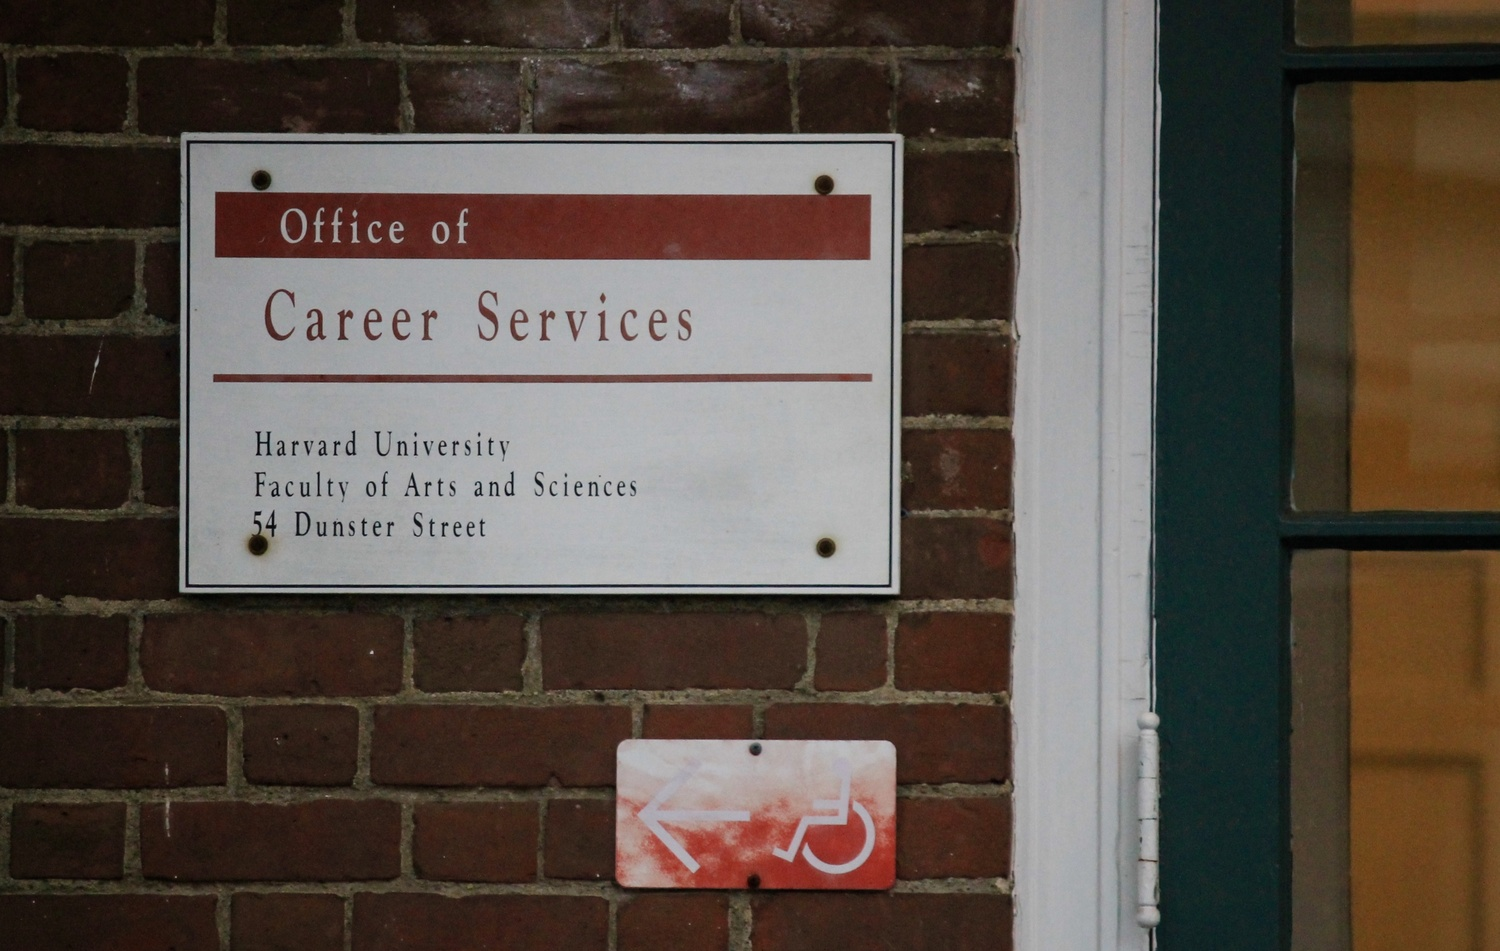 The Office of Career Services is located at 54 Dunster Street.